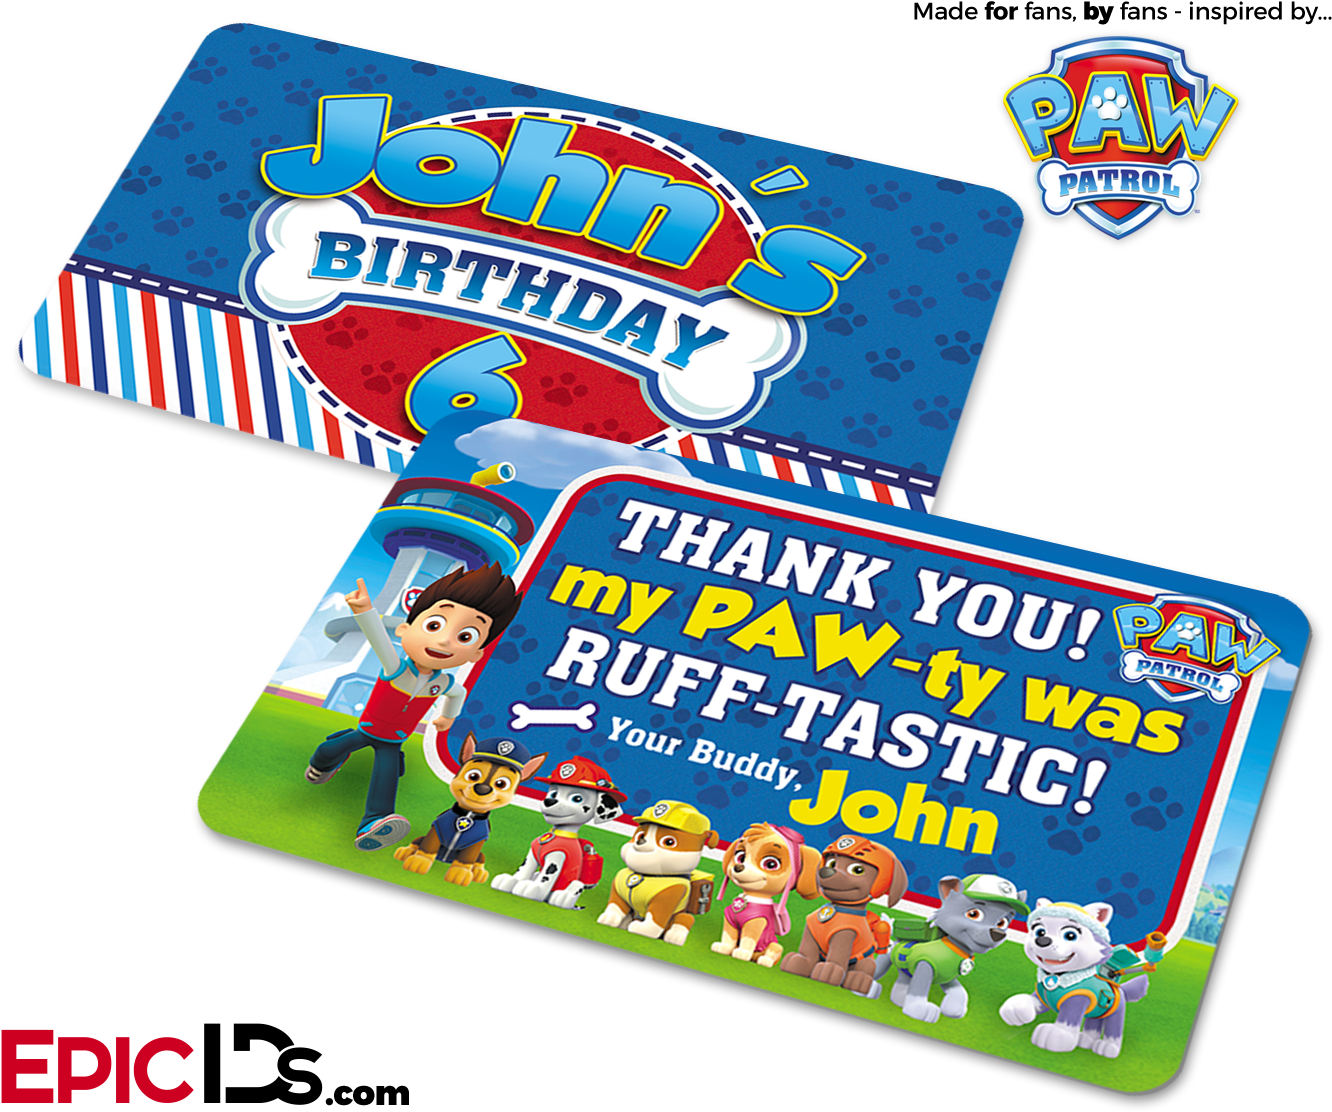 Transparent paw patrol birthday clipart - Paw Patrol Inspired Birthday Party 'party Favor' Cards - Paw Patrol Chase Card